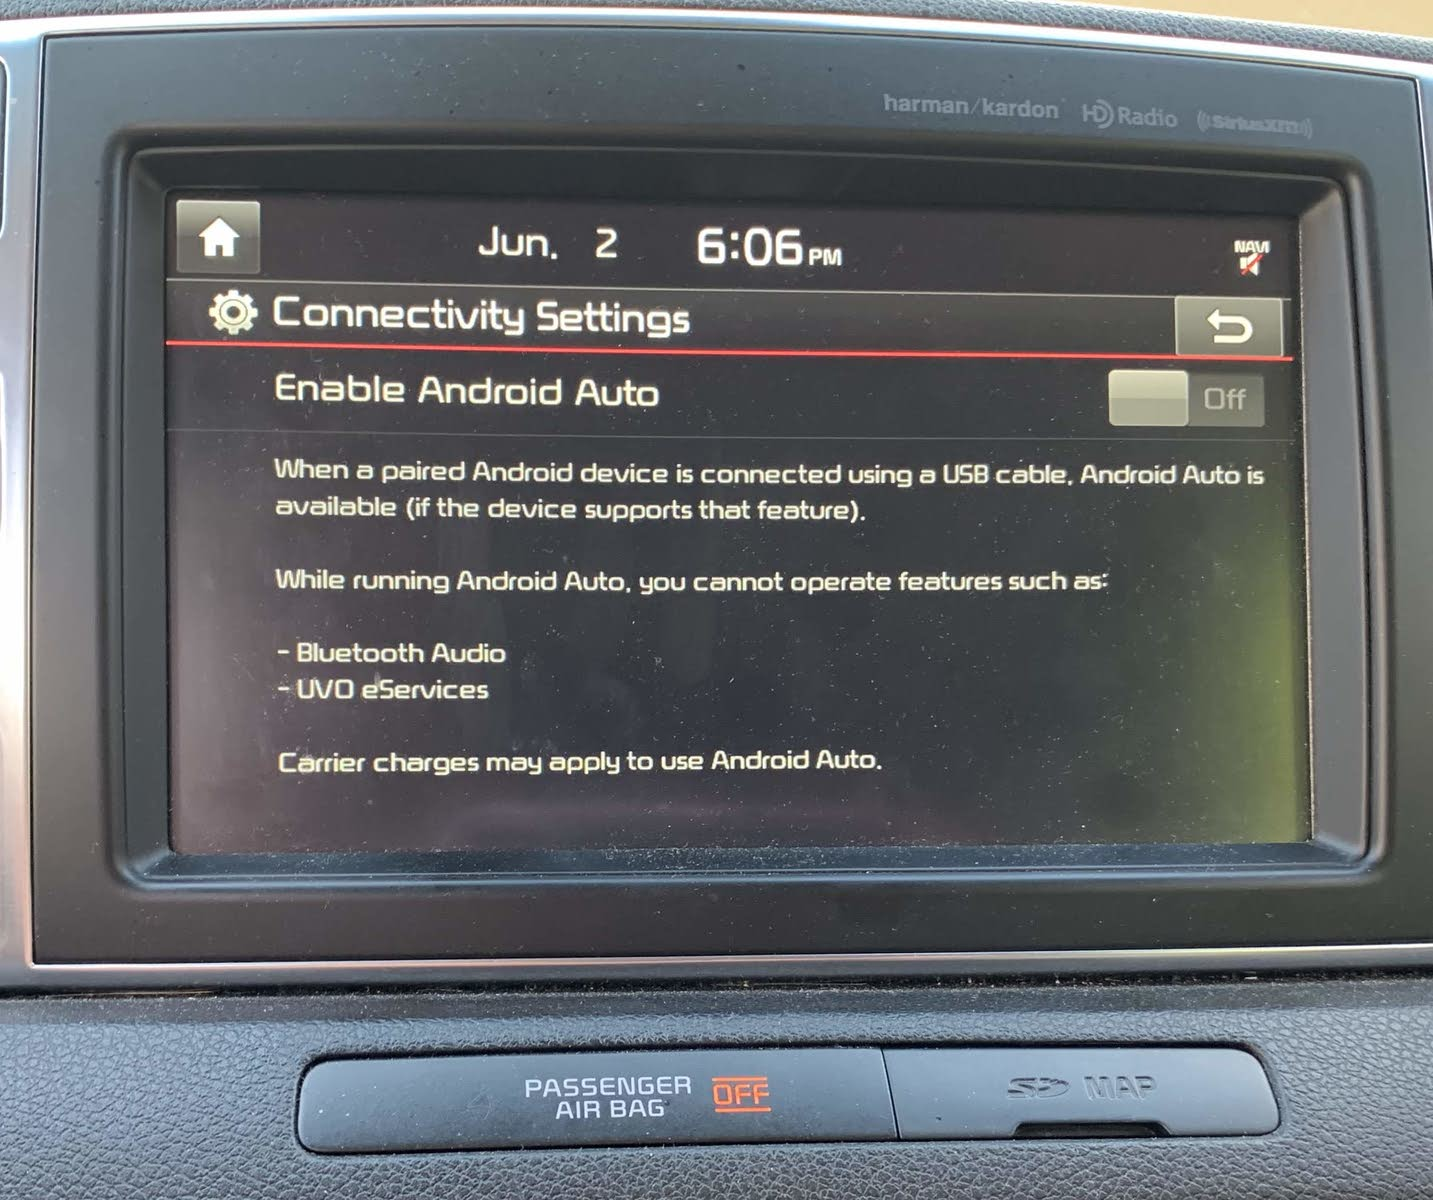 my android auto is not connecting to my car